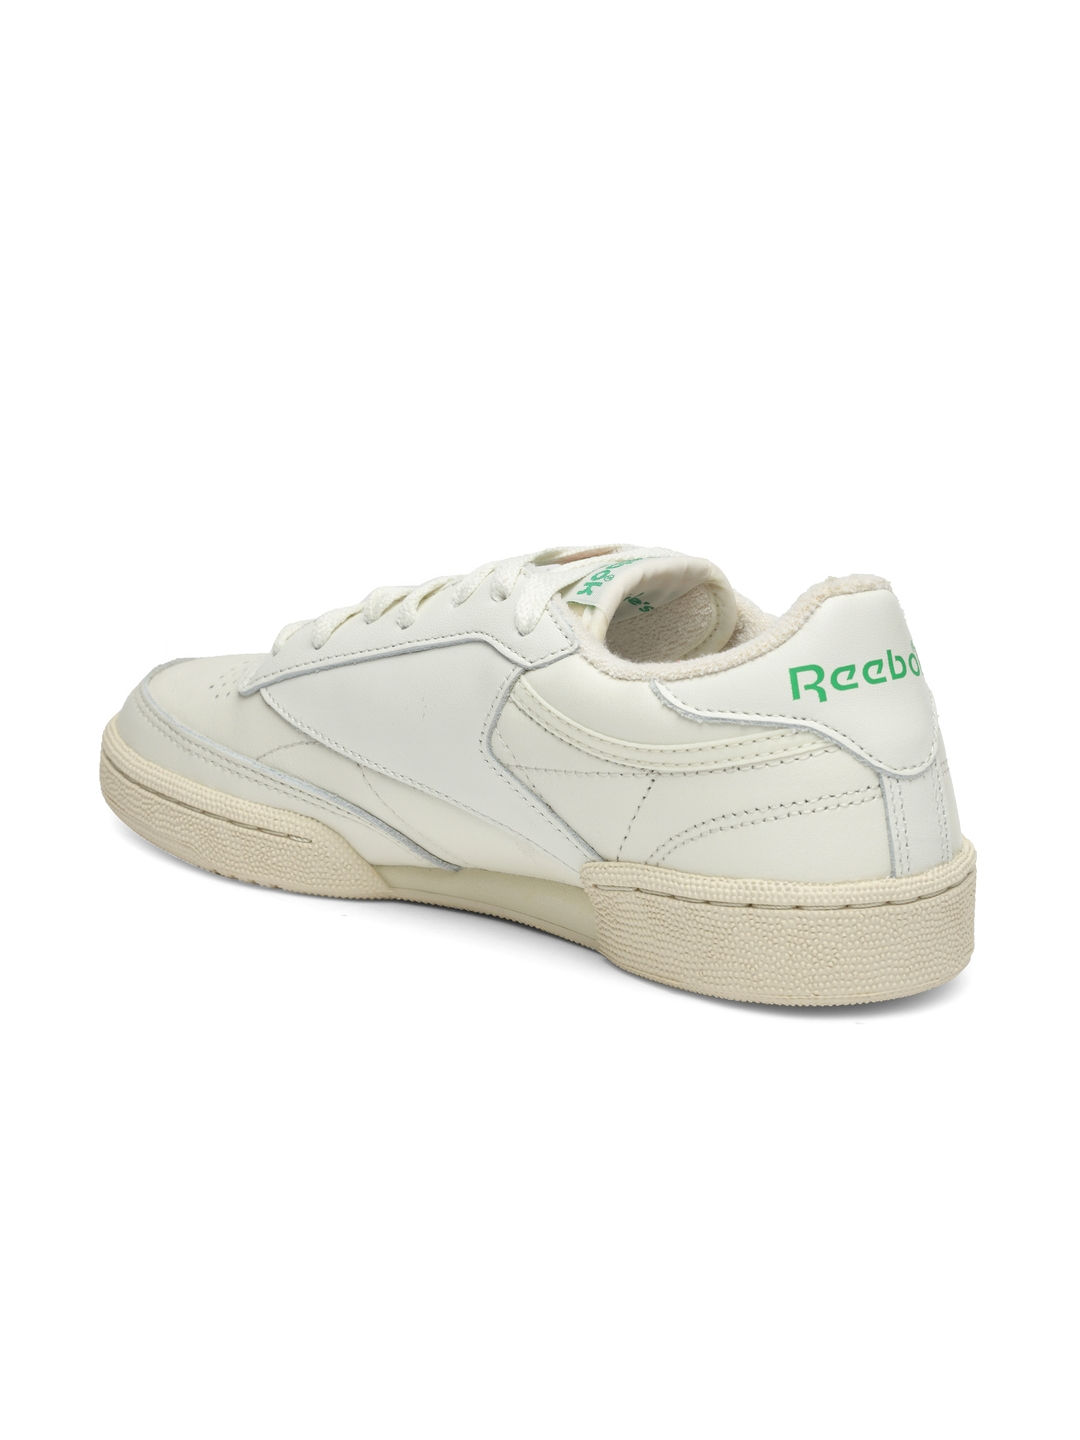 e688e44ac72c Reebok Classic Women Off-White Club C 85 Vintage Leather Sneakers